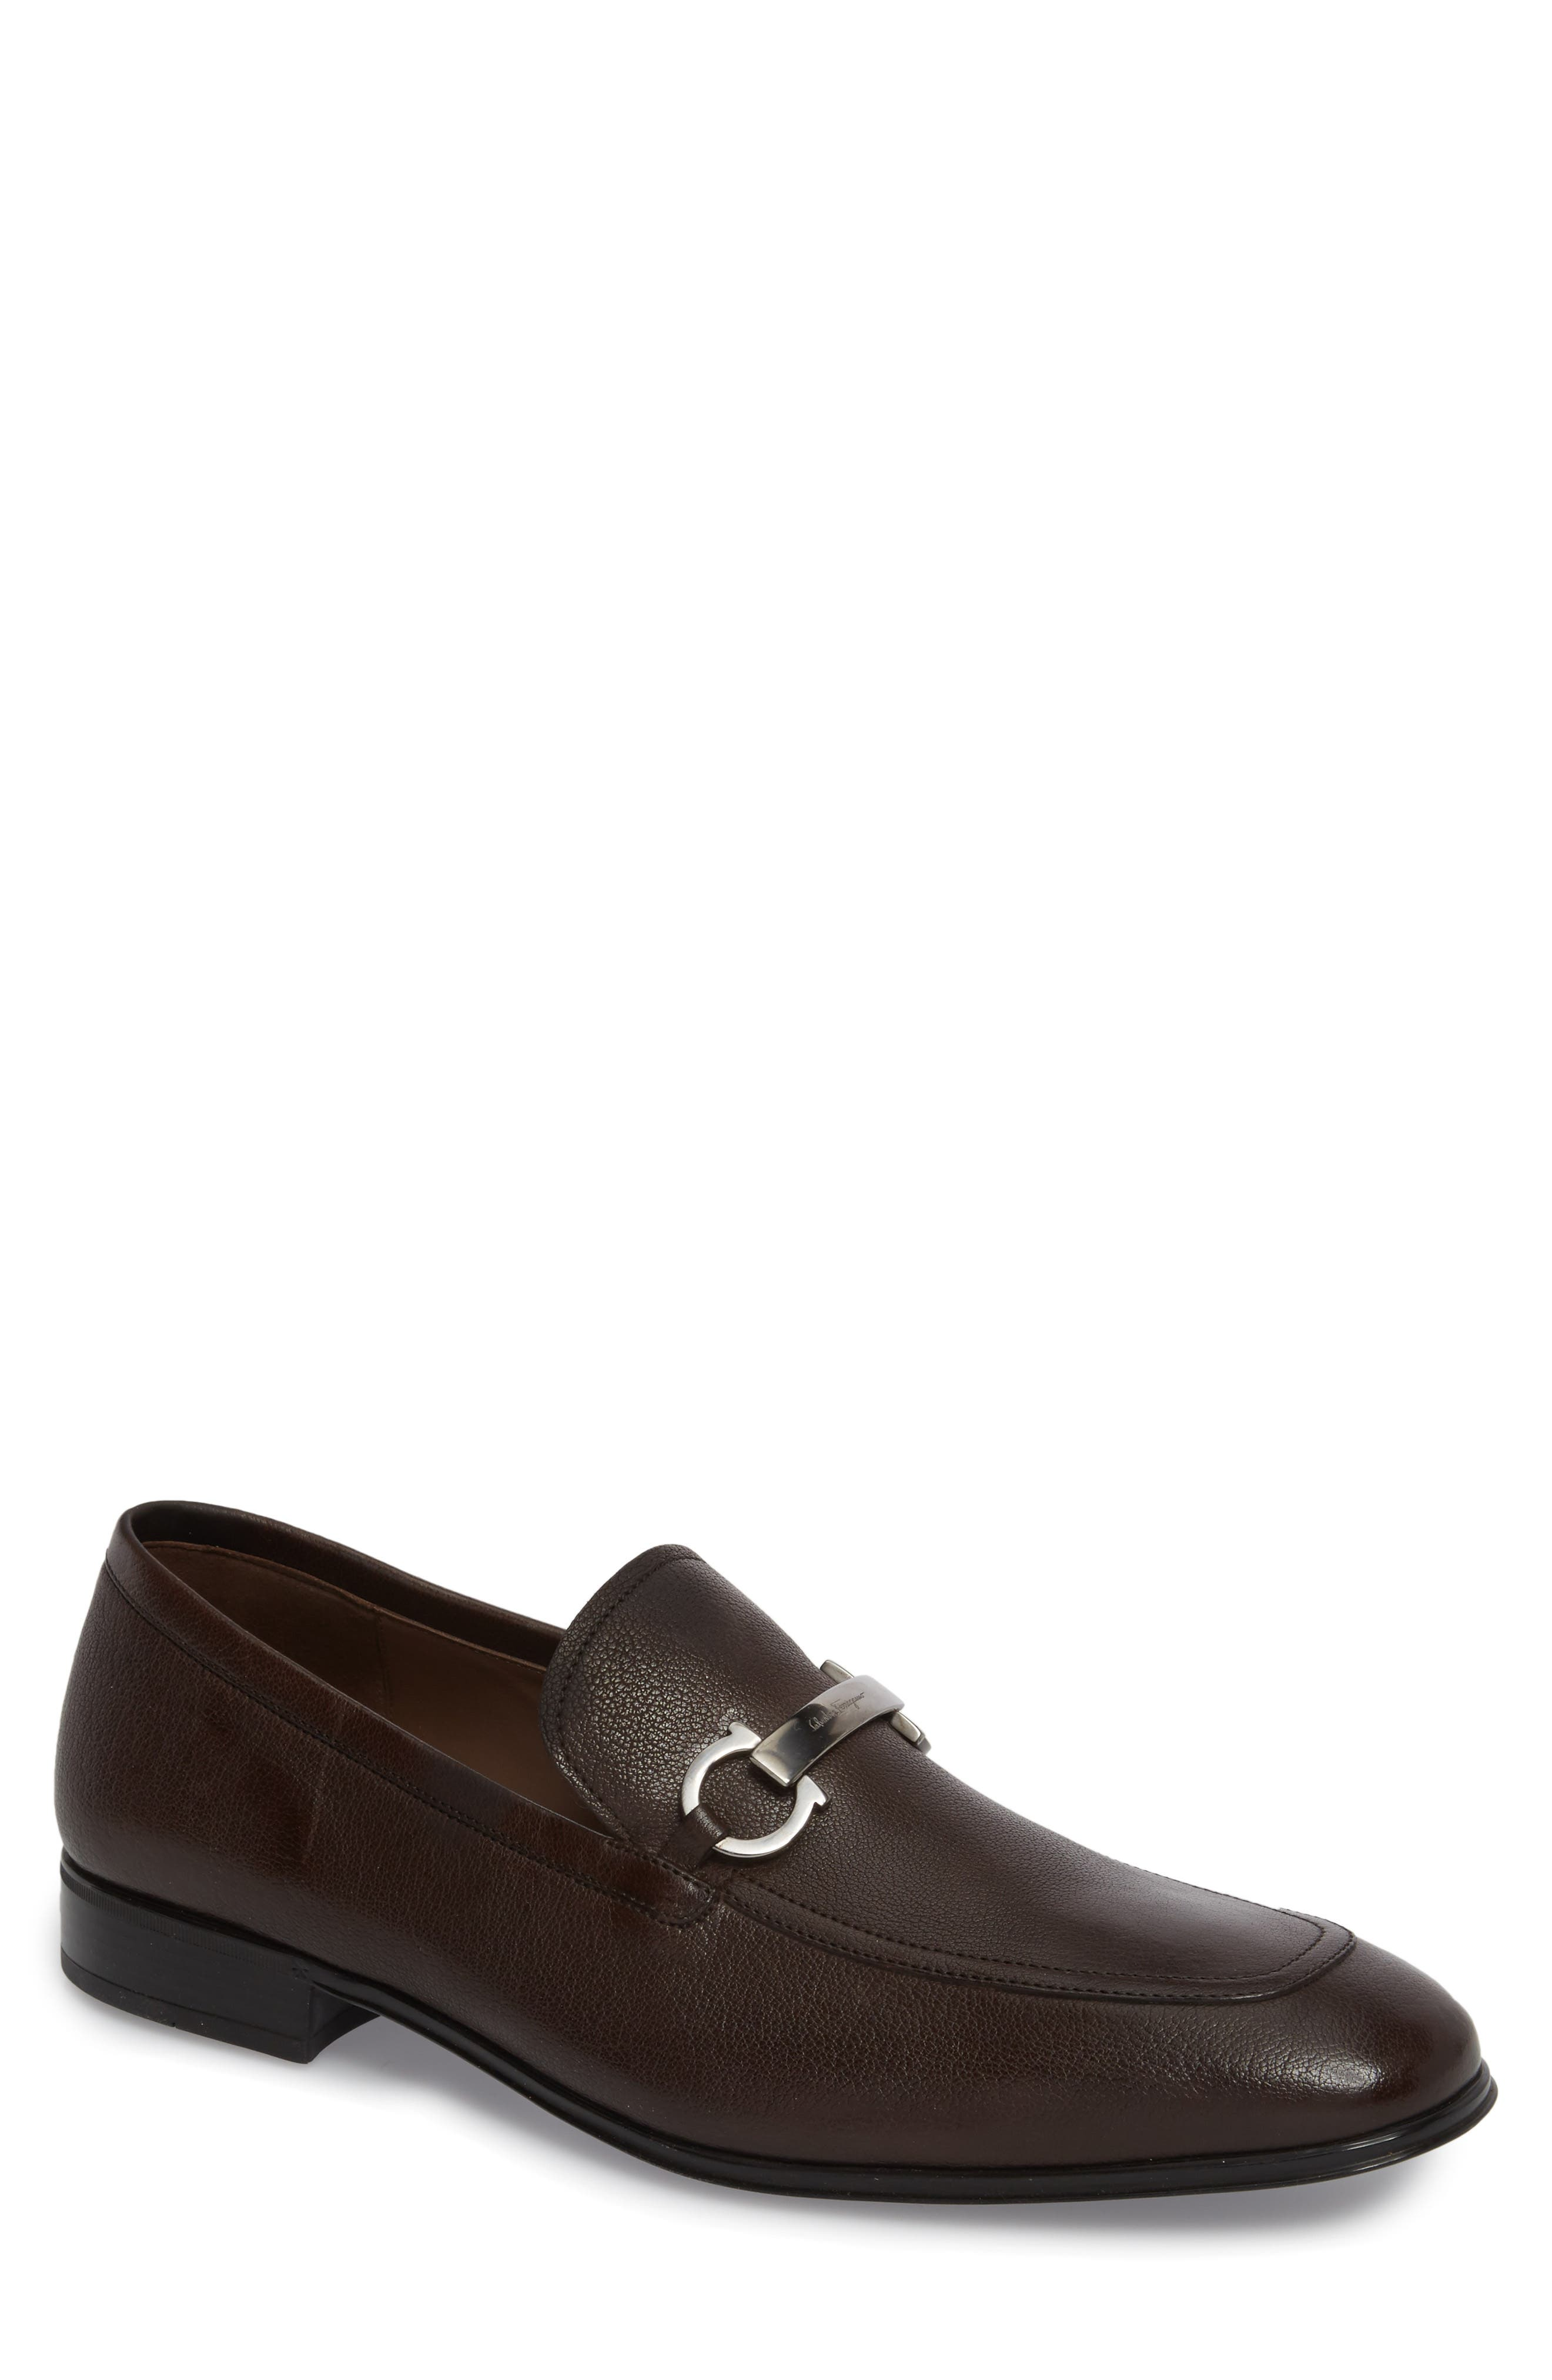 Borges Apron Toe Loafer,                             Main thumbnail 1, color,                             Brown Leather